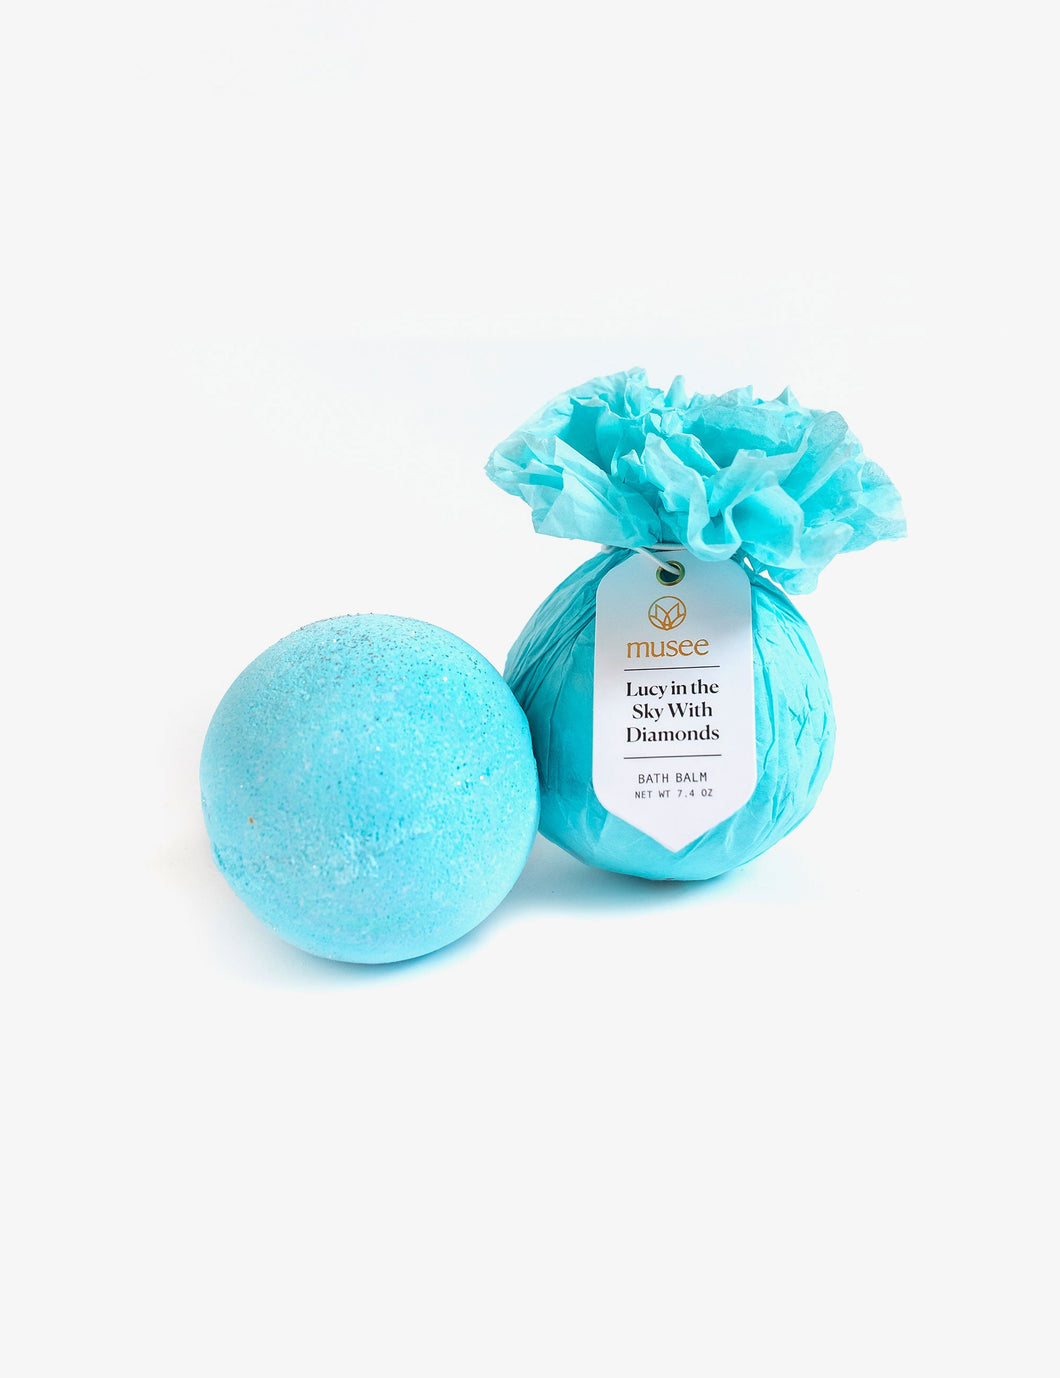 Musee Lucy In The Sky Diamonds Bath Bomb